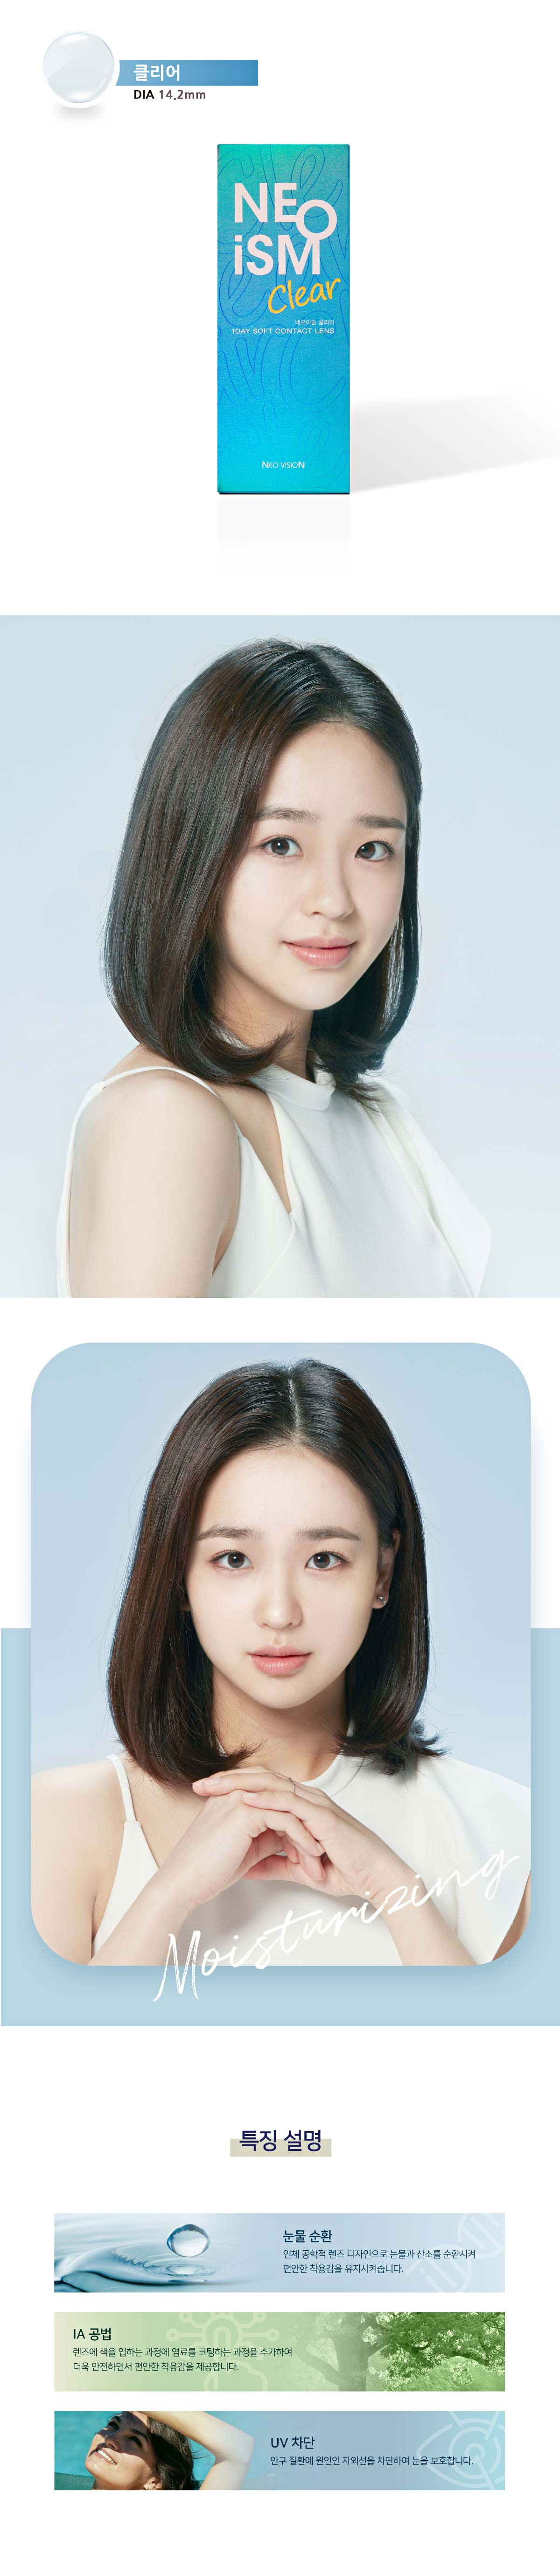 neo-ism-1day-clear-korean-lenses-contacts2.jpg